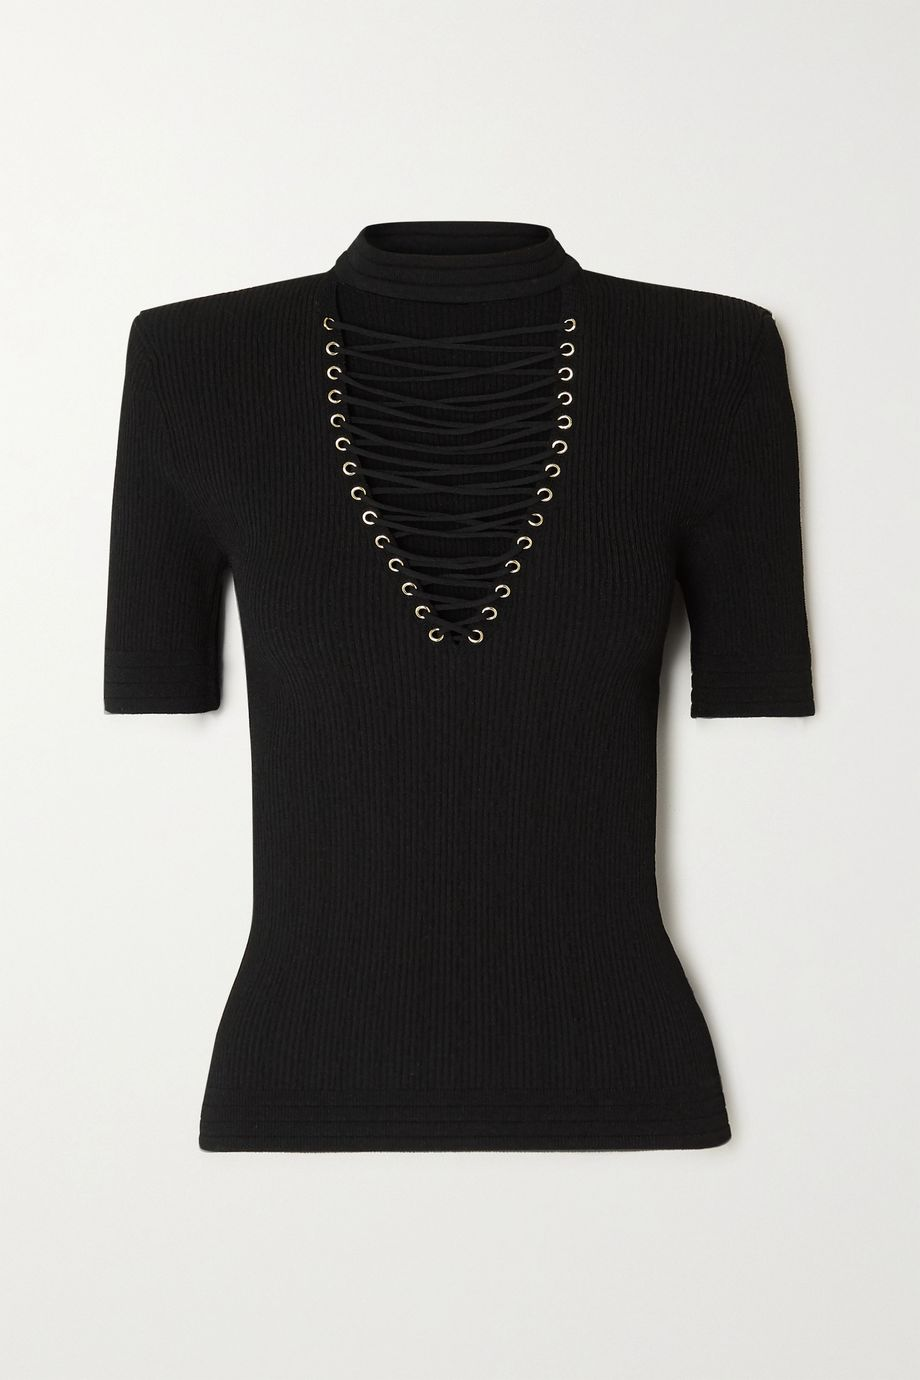 Balmain Lace-up ribbed-knit top